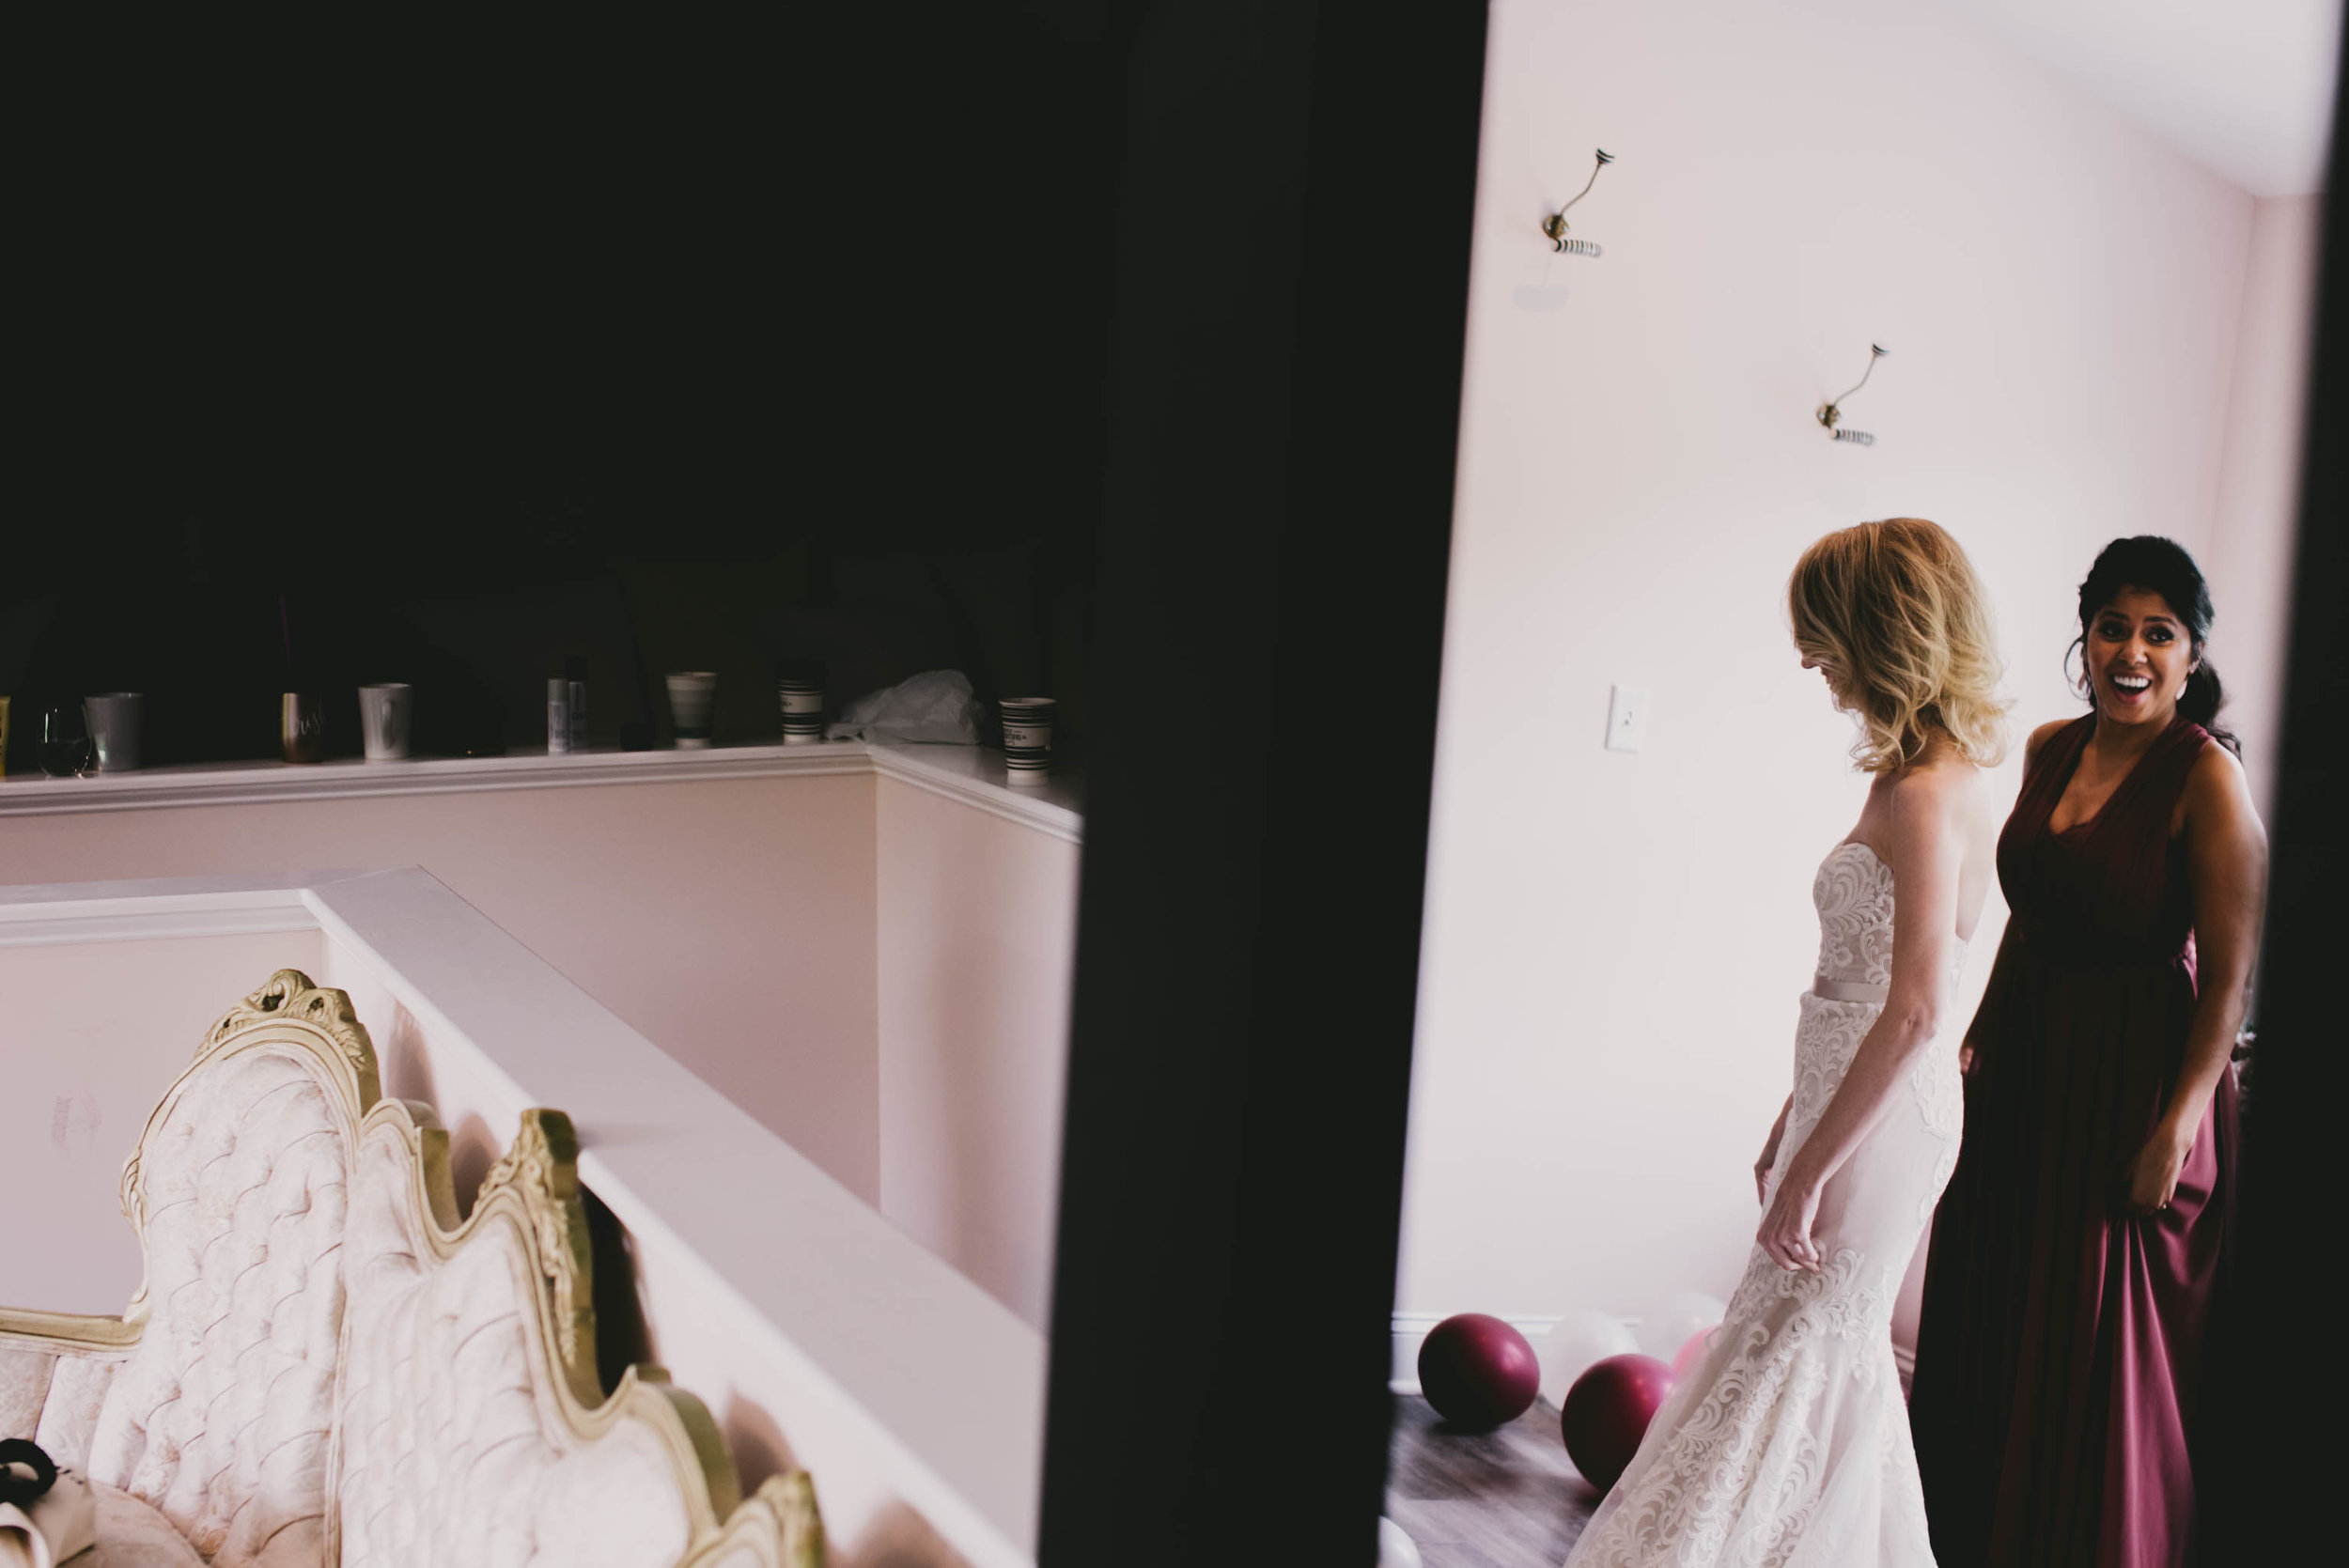 a reflection of the bride as she is getting ready